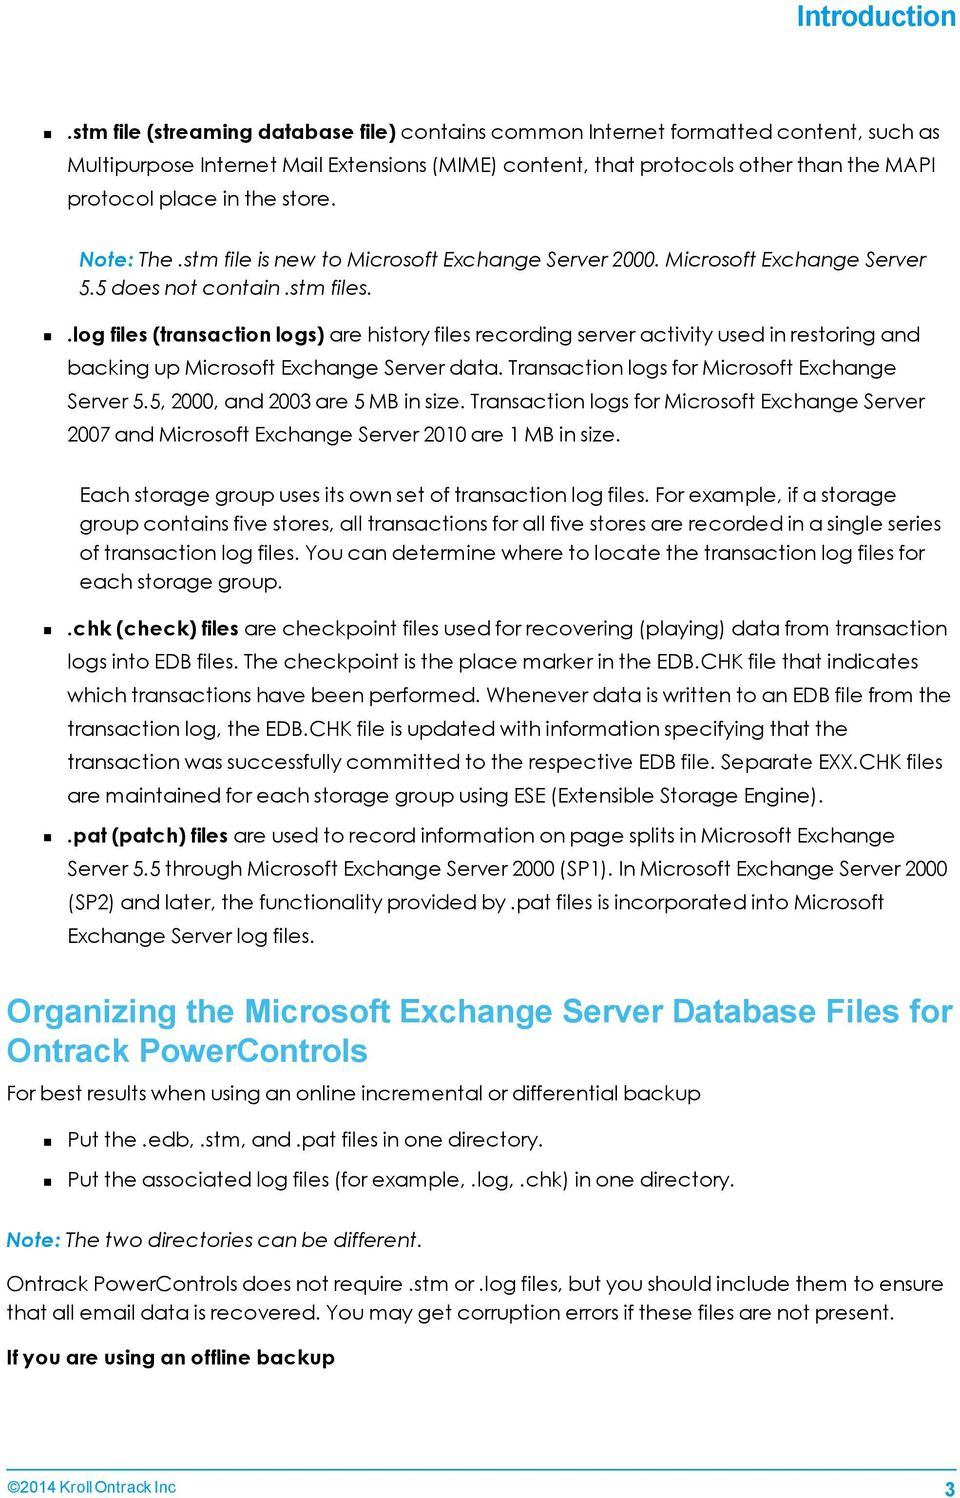 store. Note: The.stm file is new to Microsoft Exchange Server 2000. Microsoft Exchange Server 5.5 does not contain.stm files.